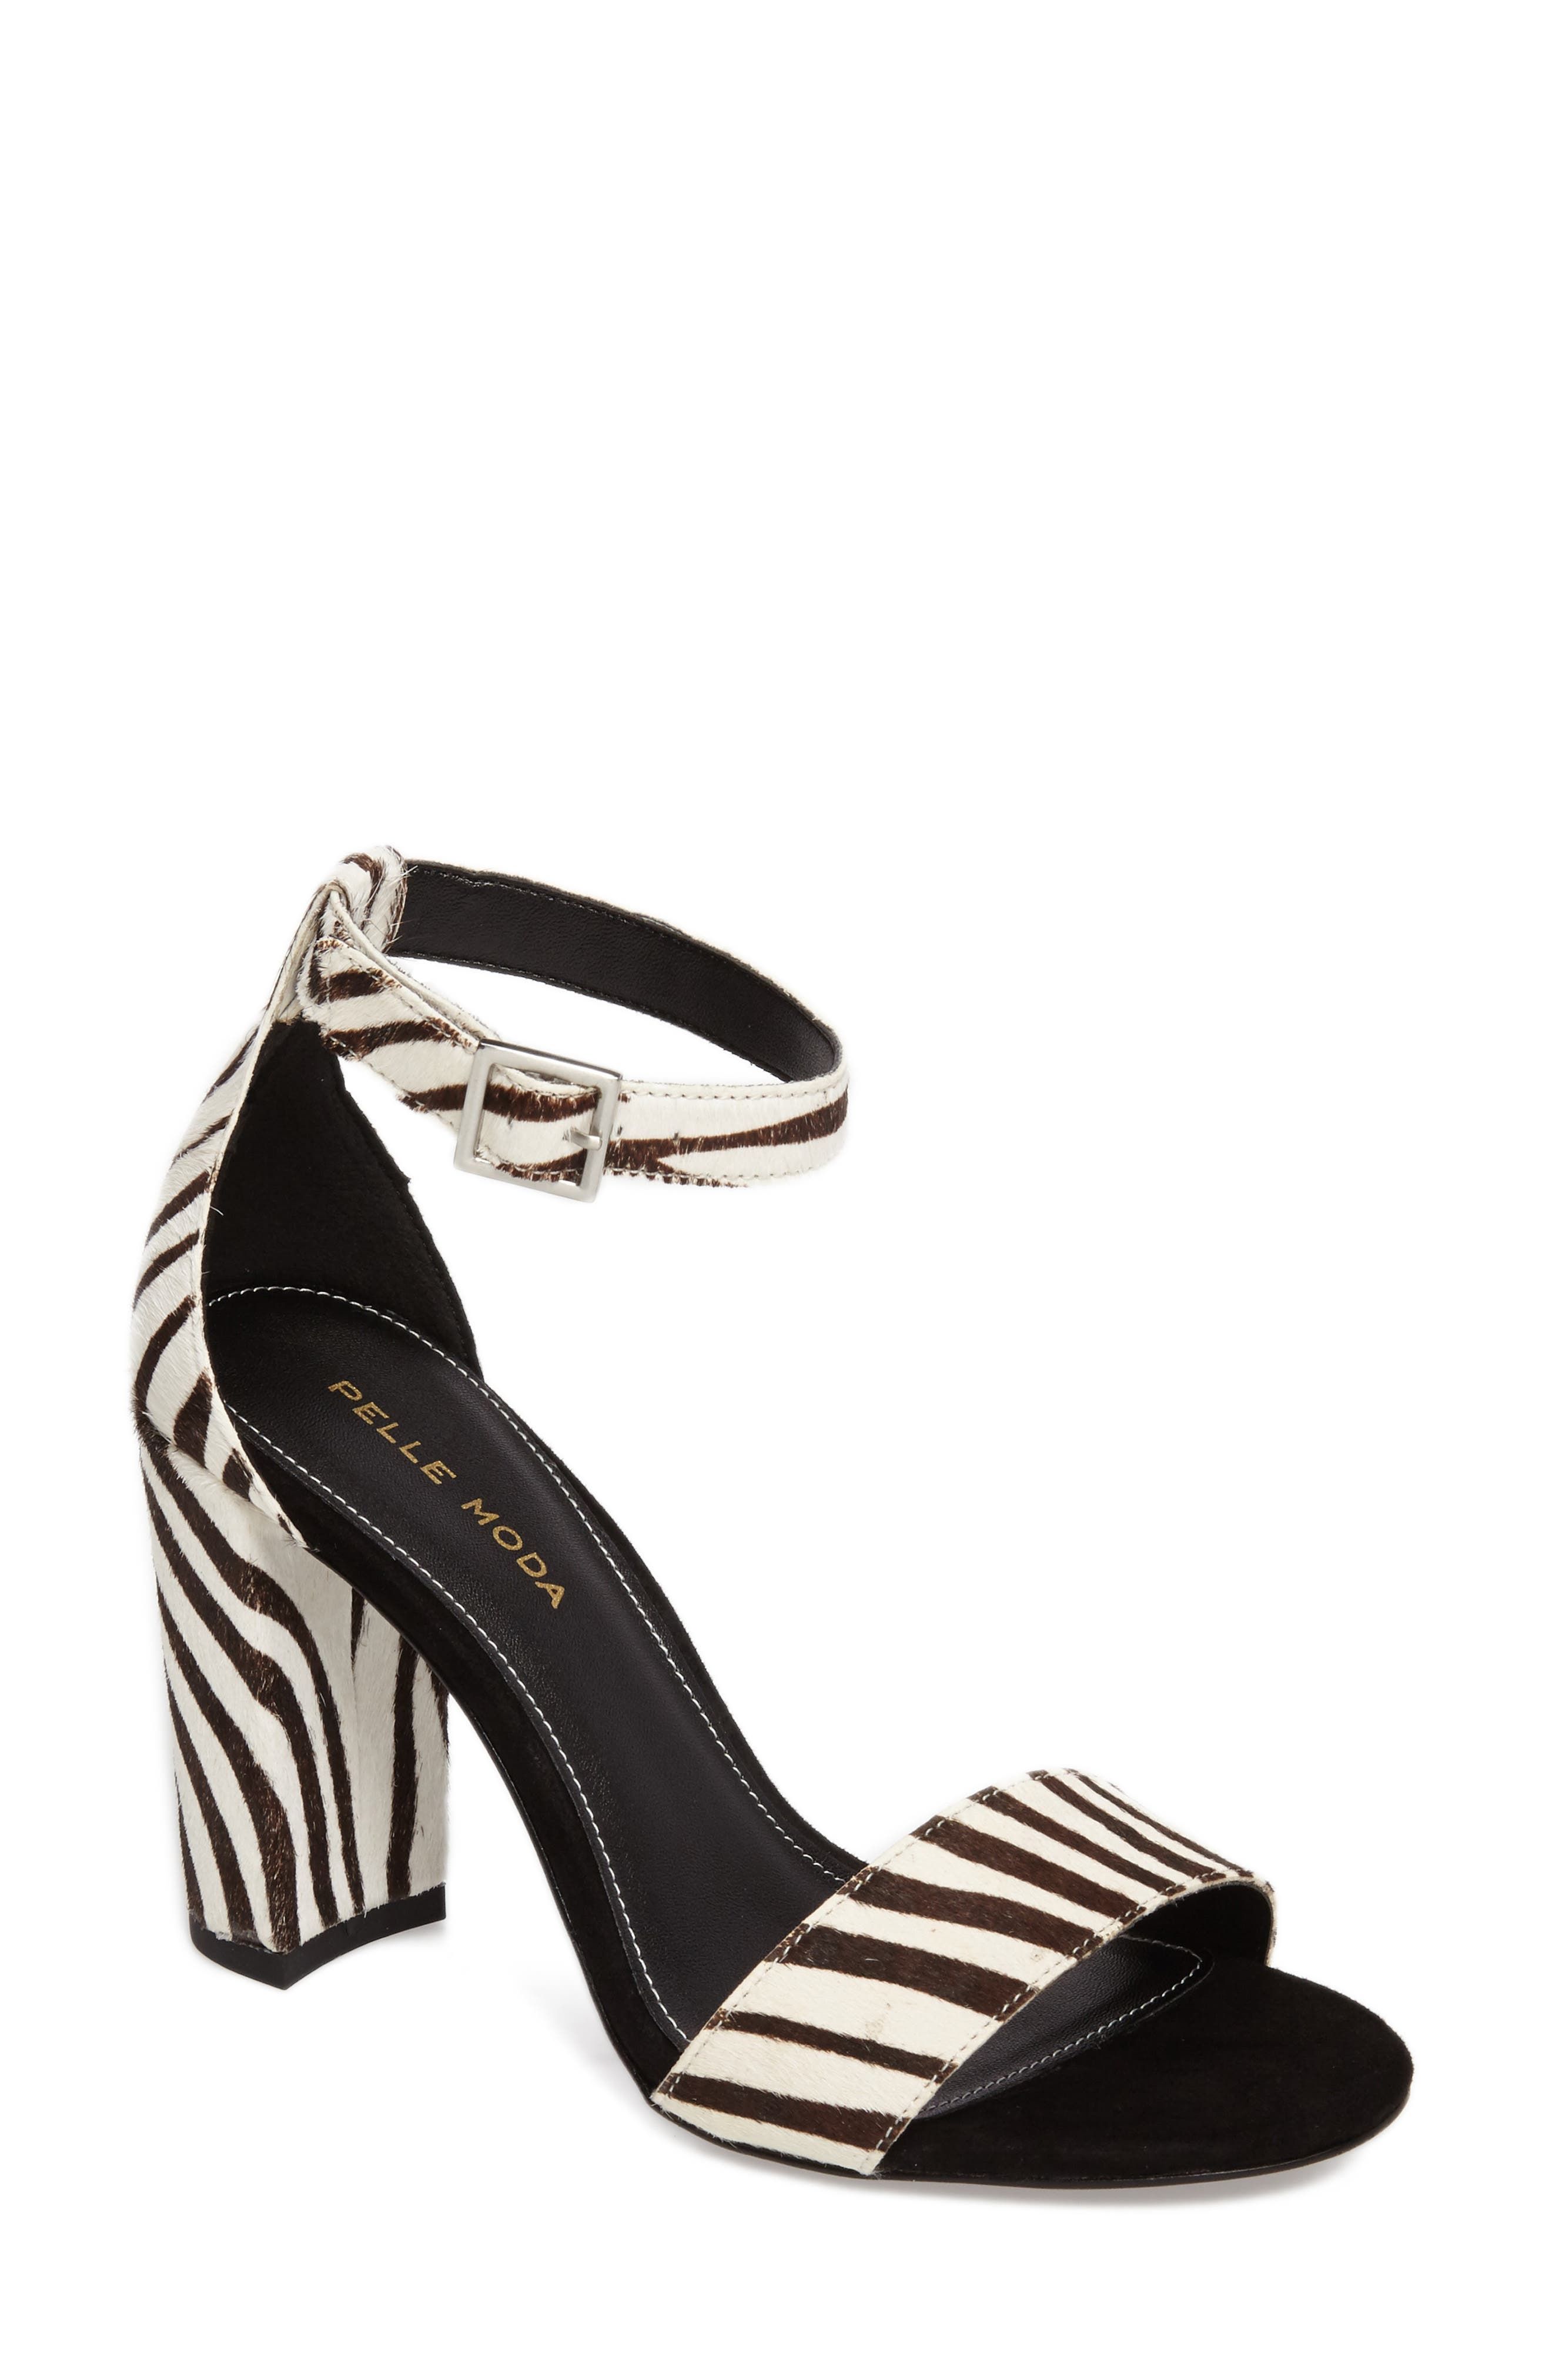 'Bonnie' Ankle Strap Sandal,                             Main thumbnail 1, color,                             Zebra Print Calf Hair